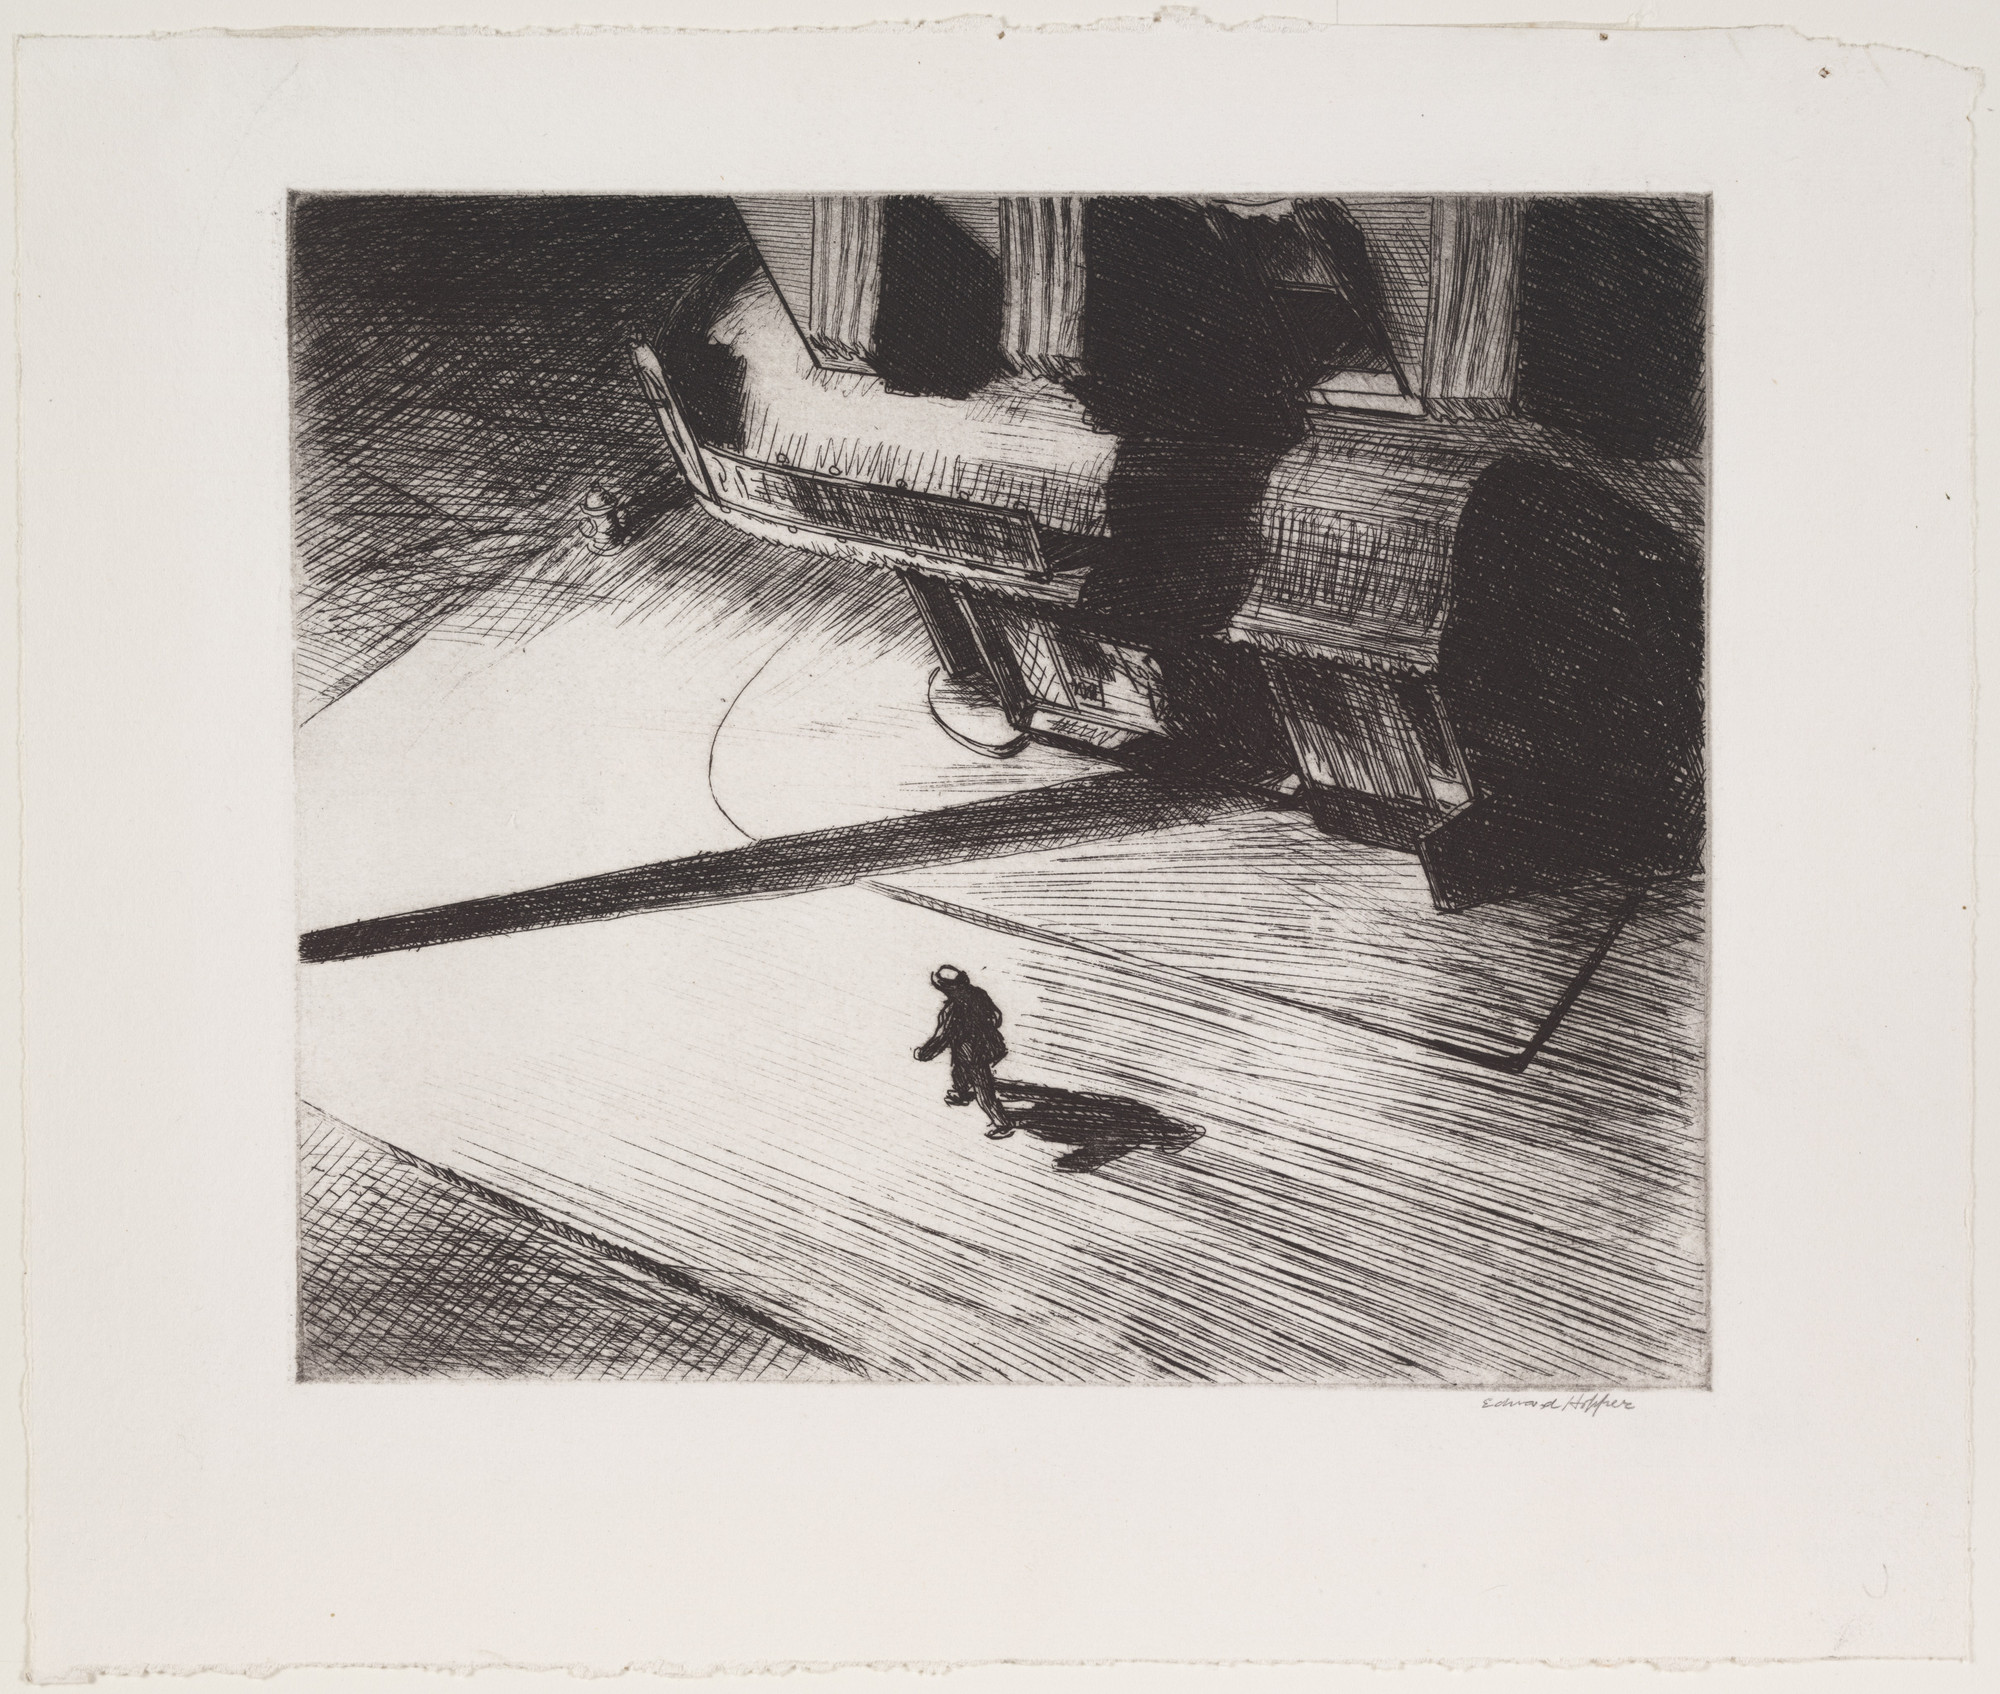 Edward Hopper. Night Shadows. 1921, published December 1924